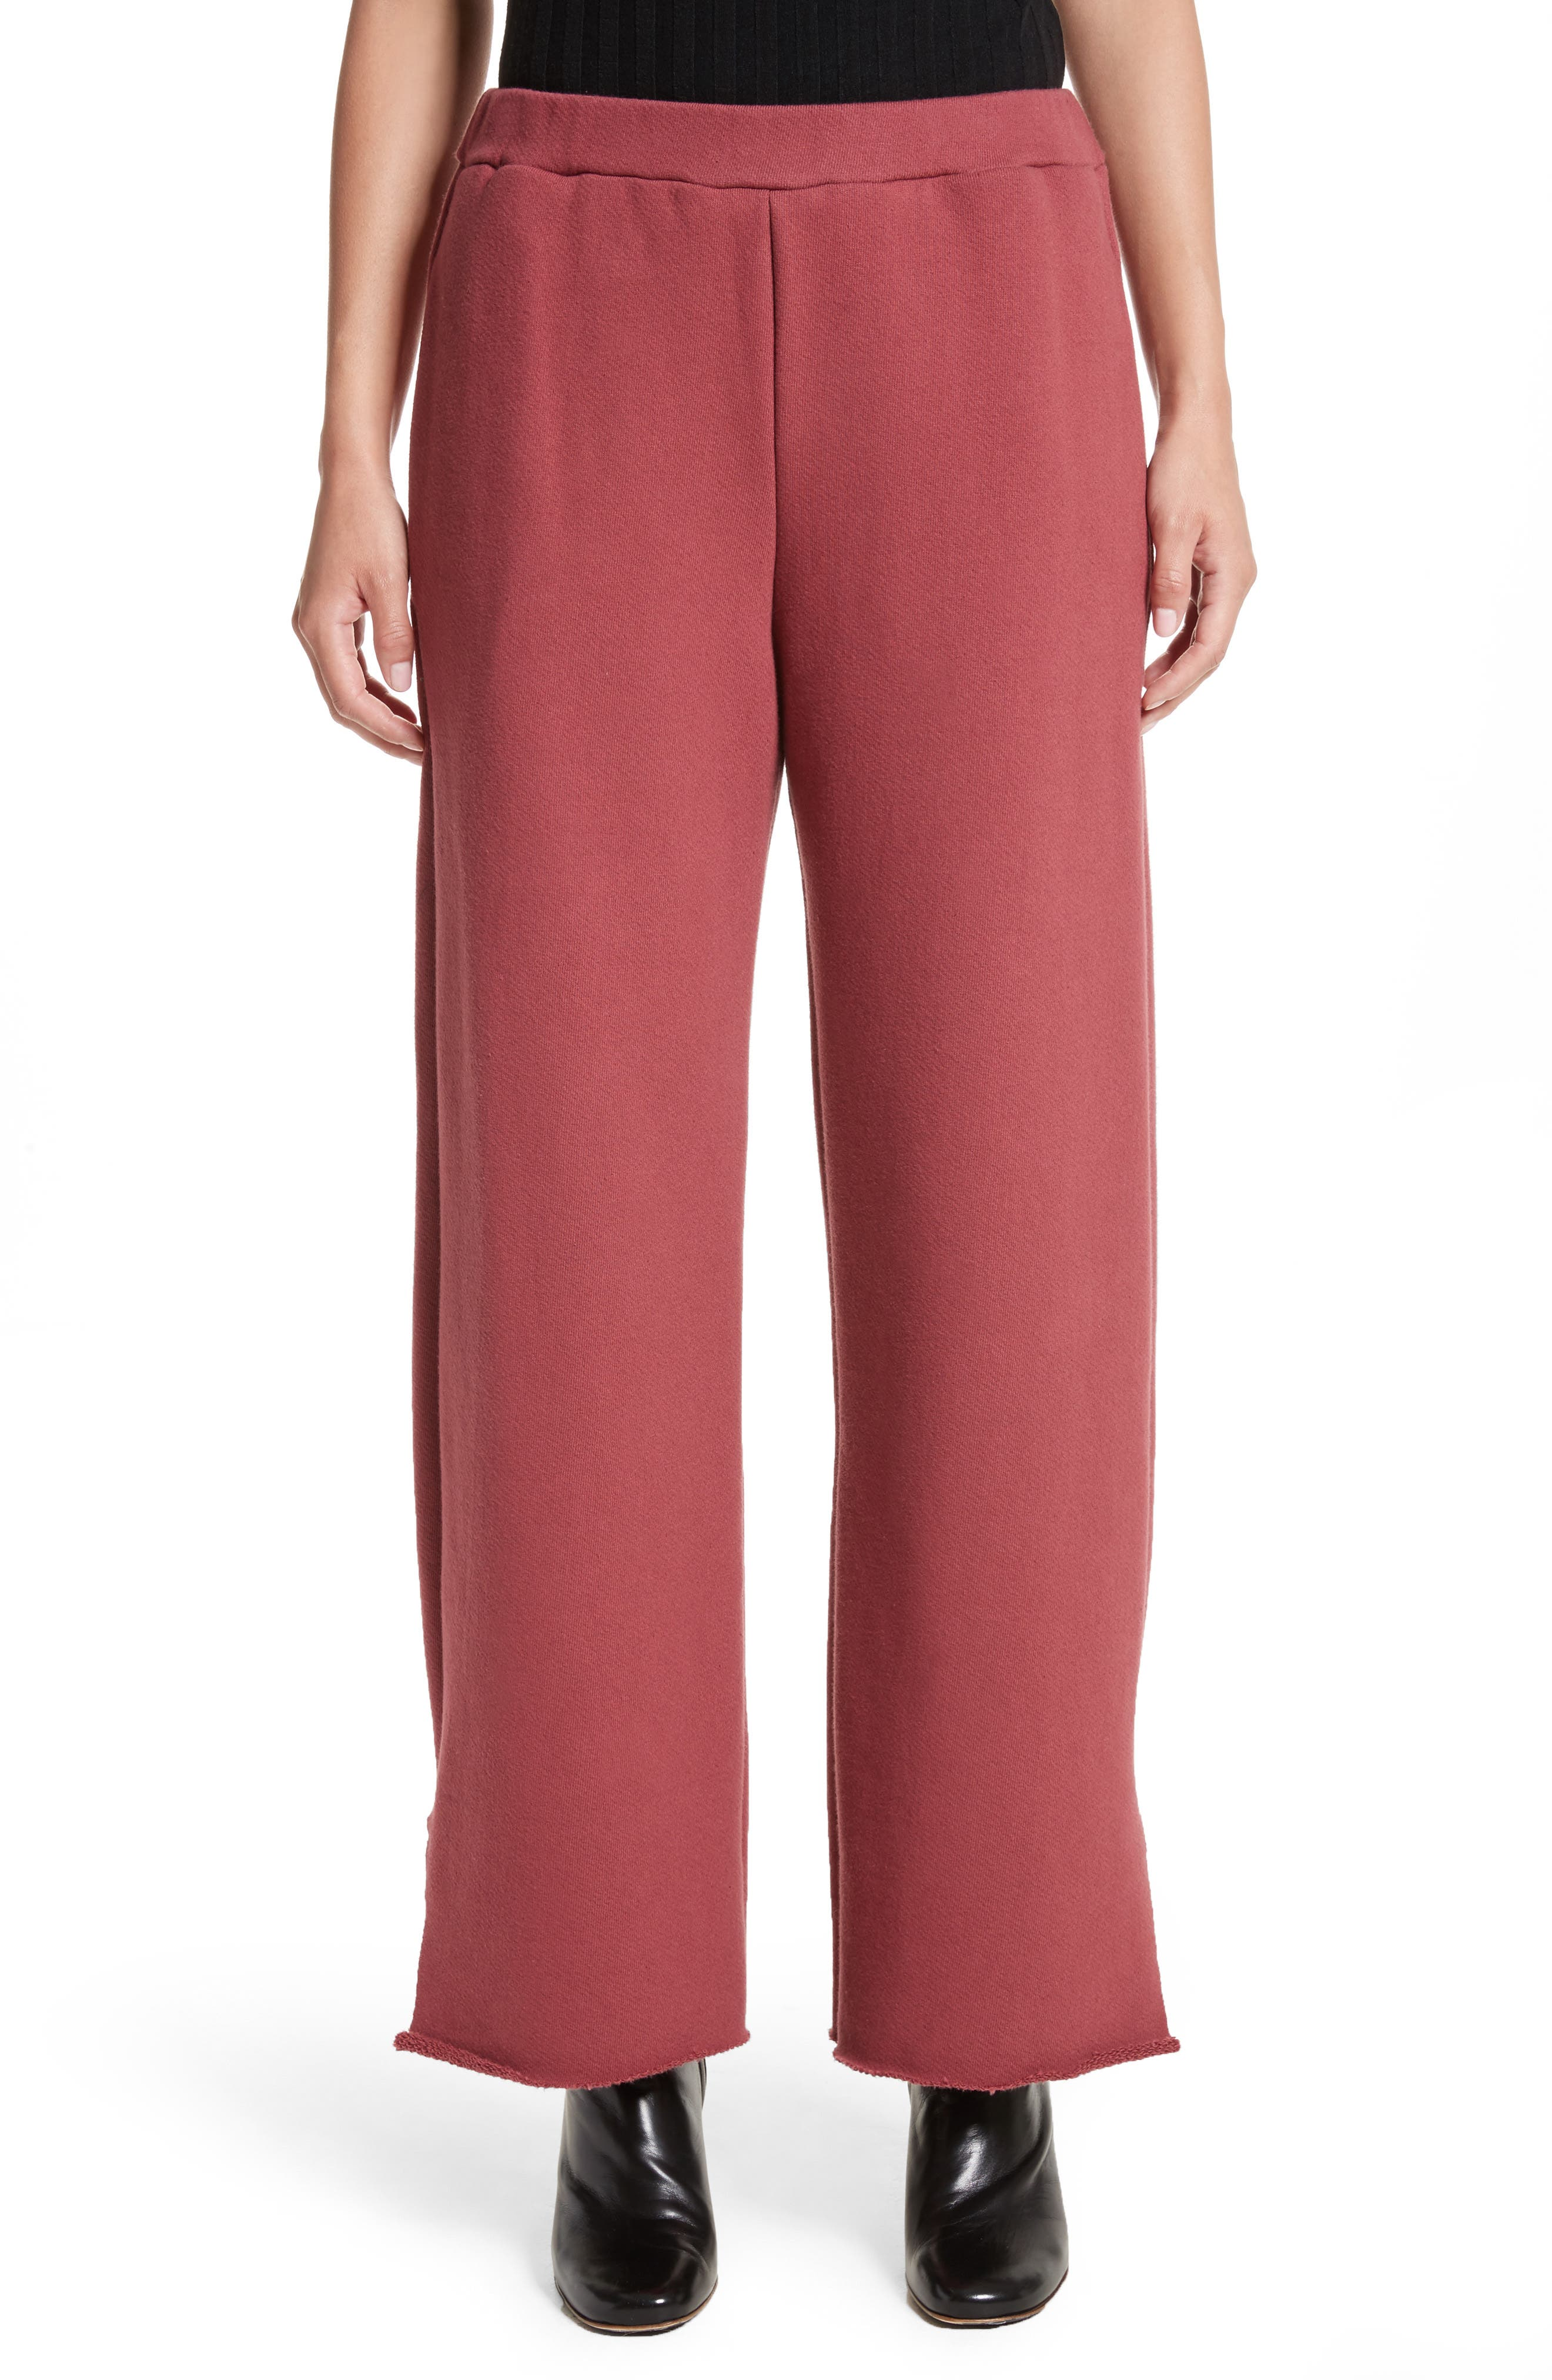 Canal French Terry Sweatpants,                             Main thumbnail 1, color,                             650